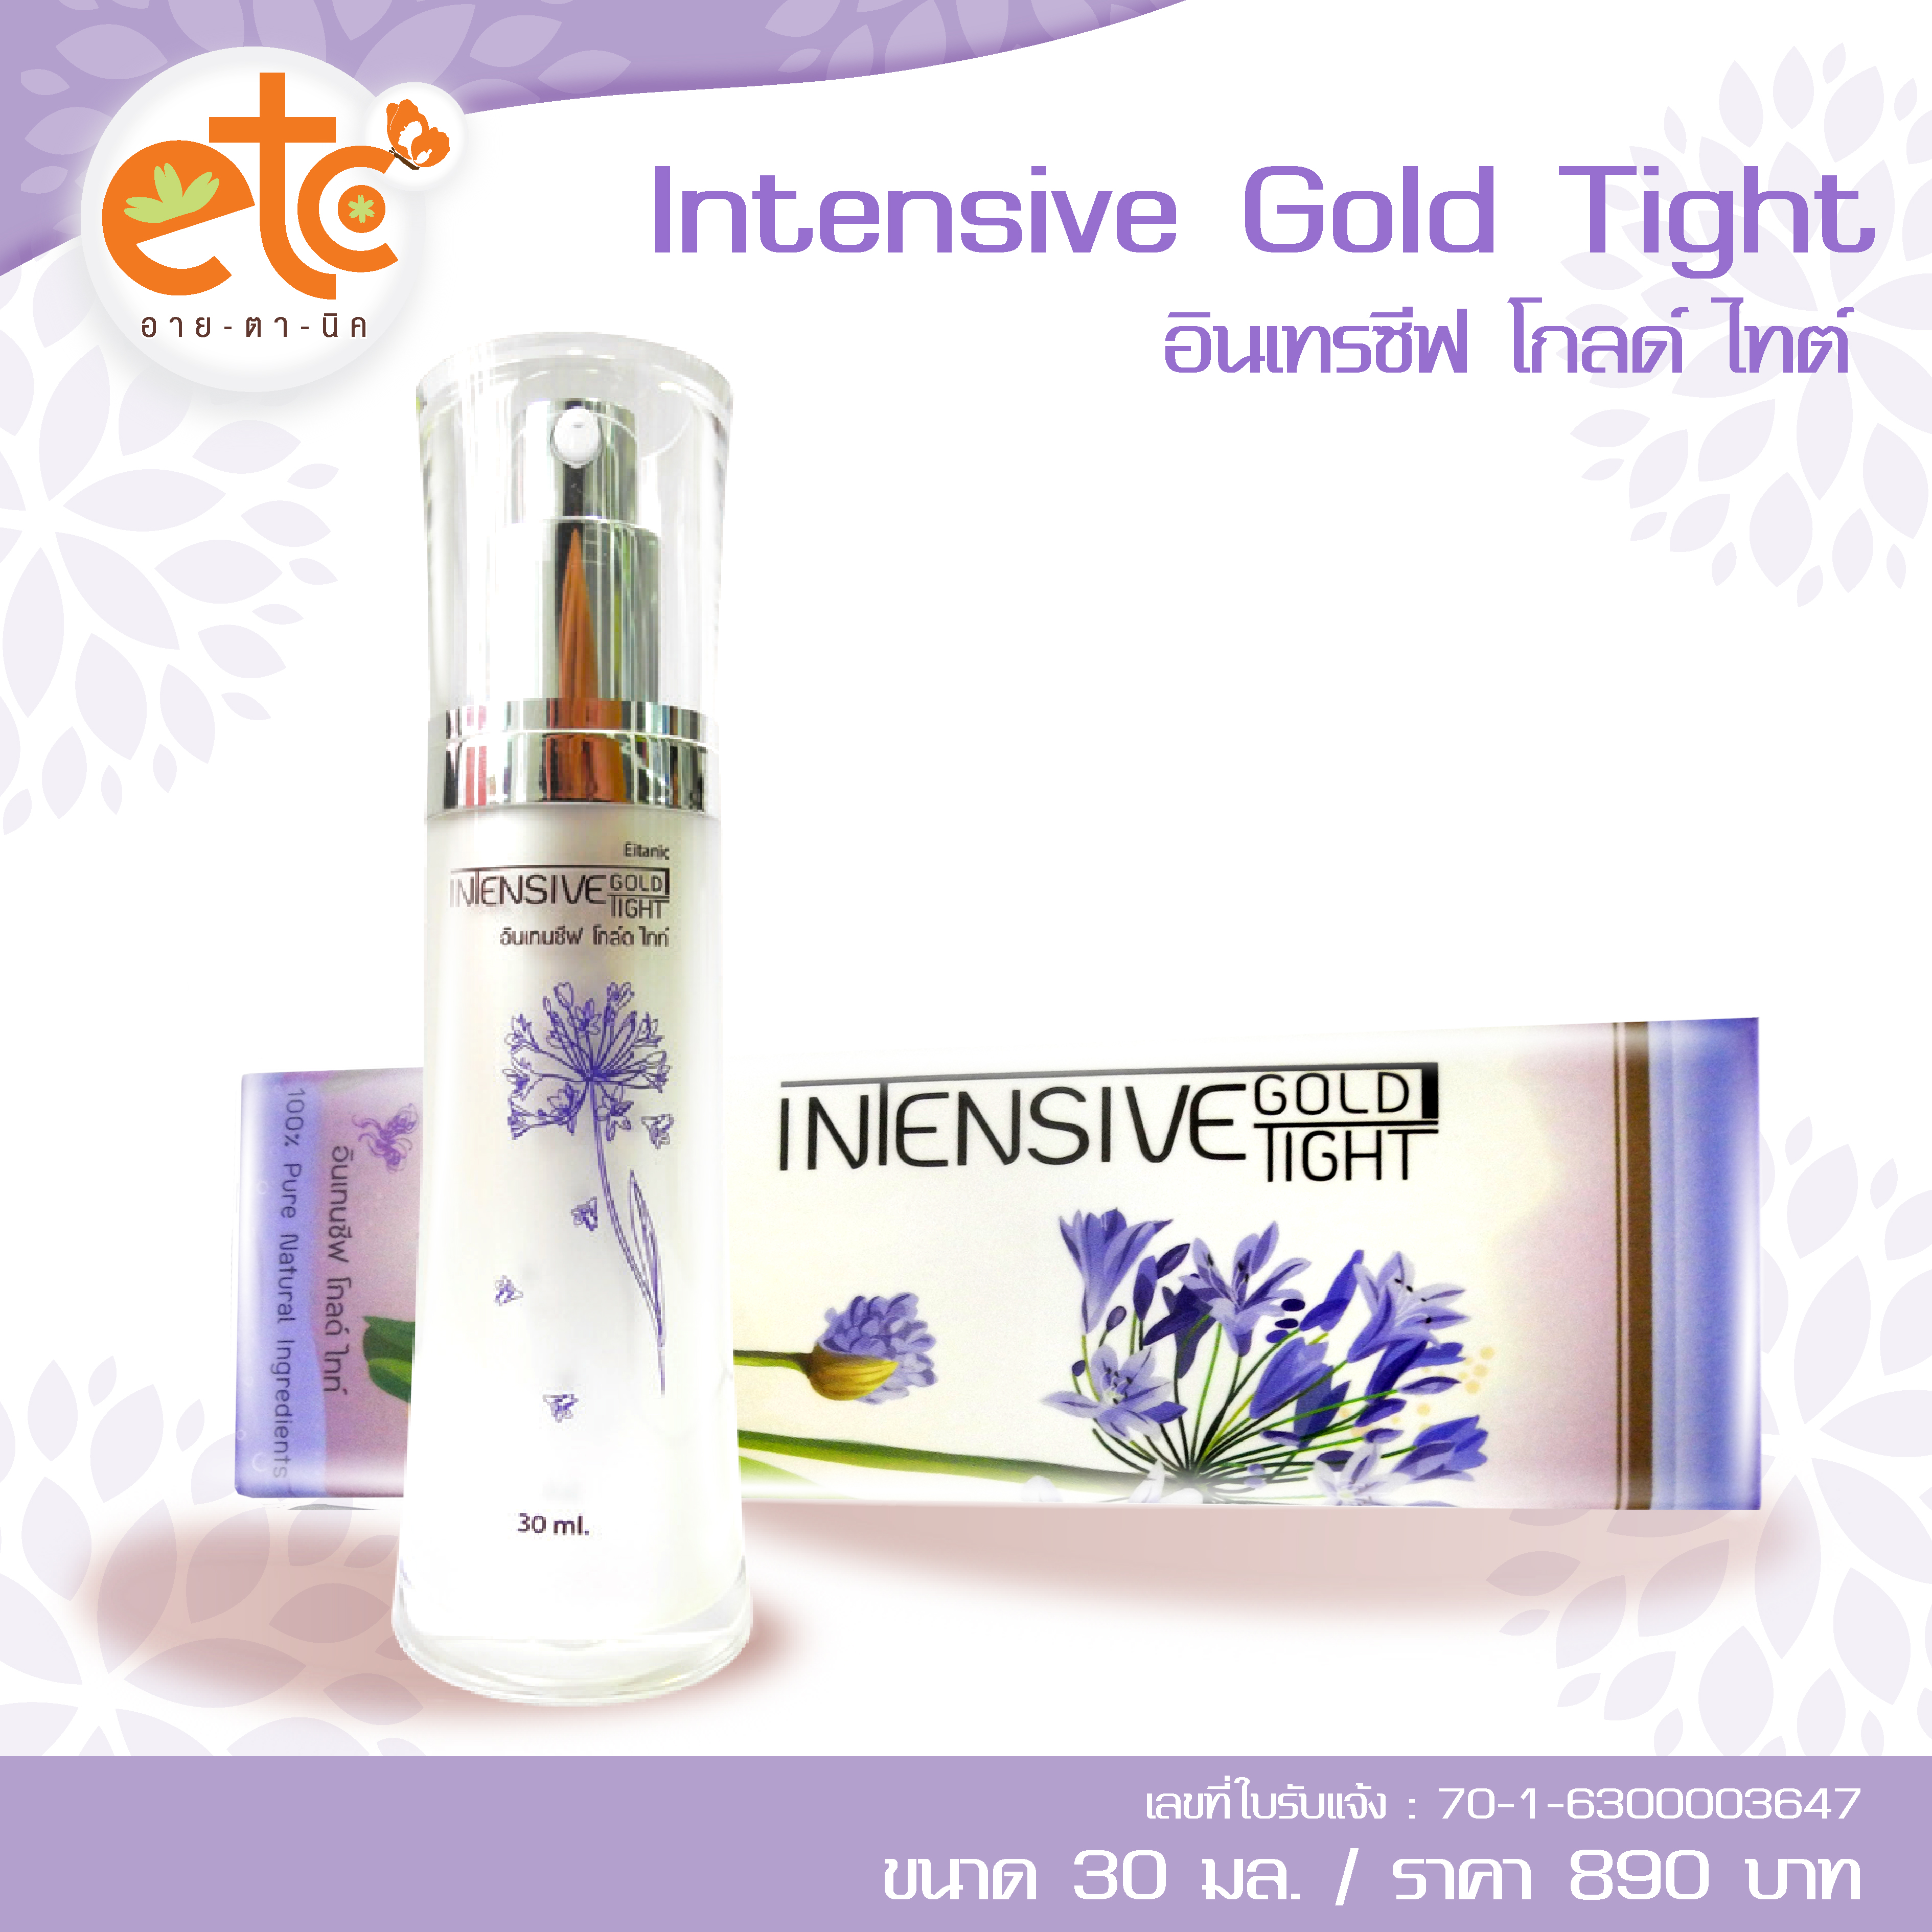 Intensive Gold Tight